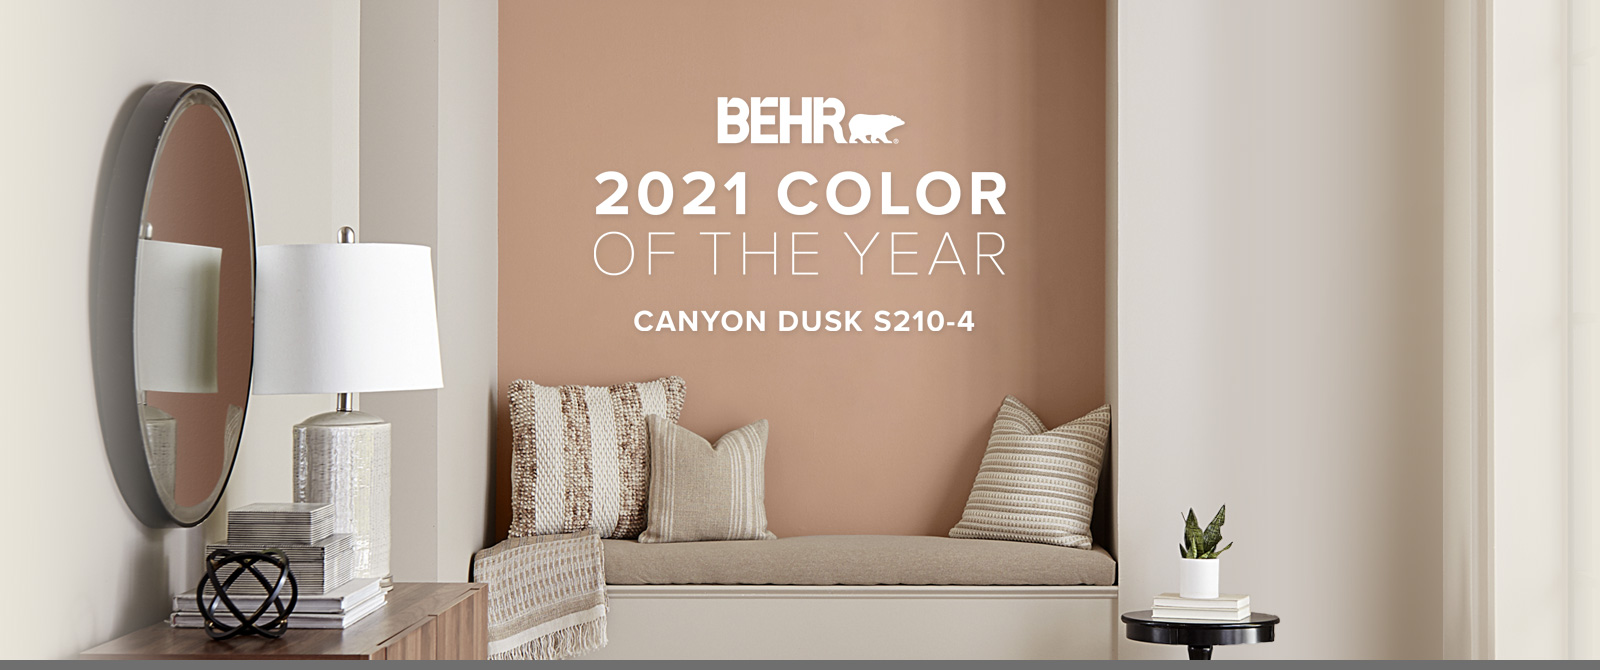 Image with the words BEHR 2021 Color of the Year is Canyon Dusk